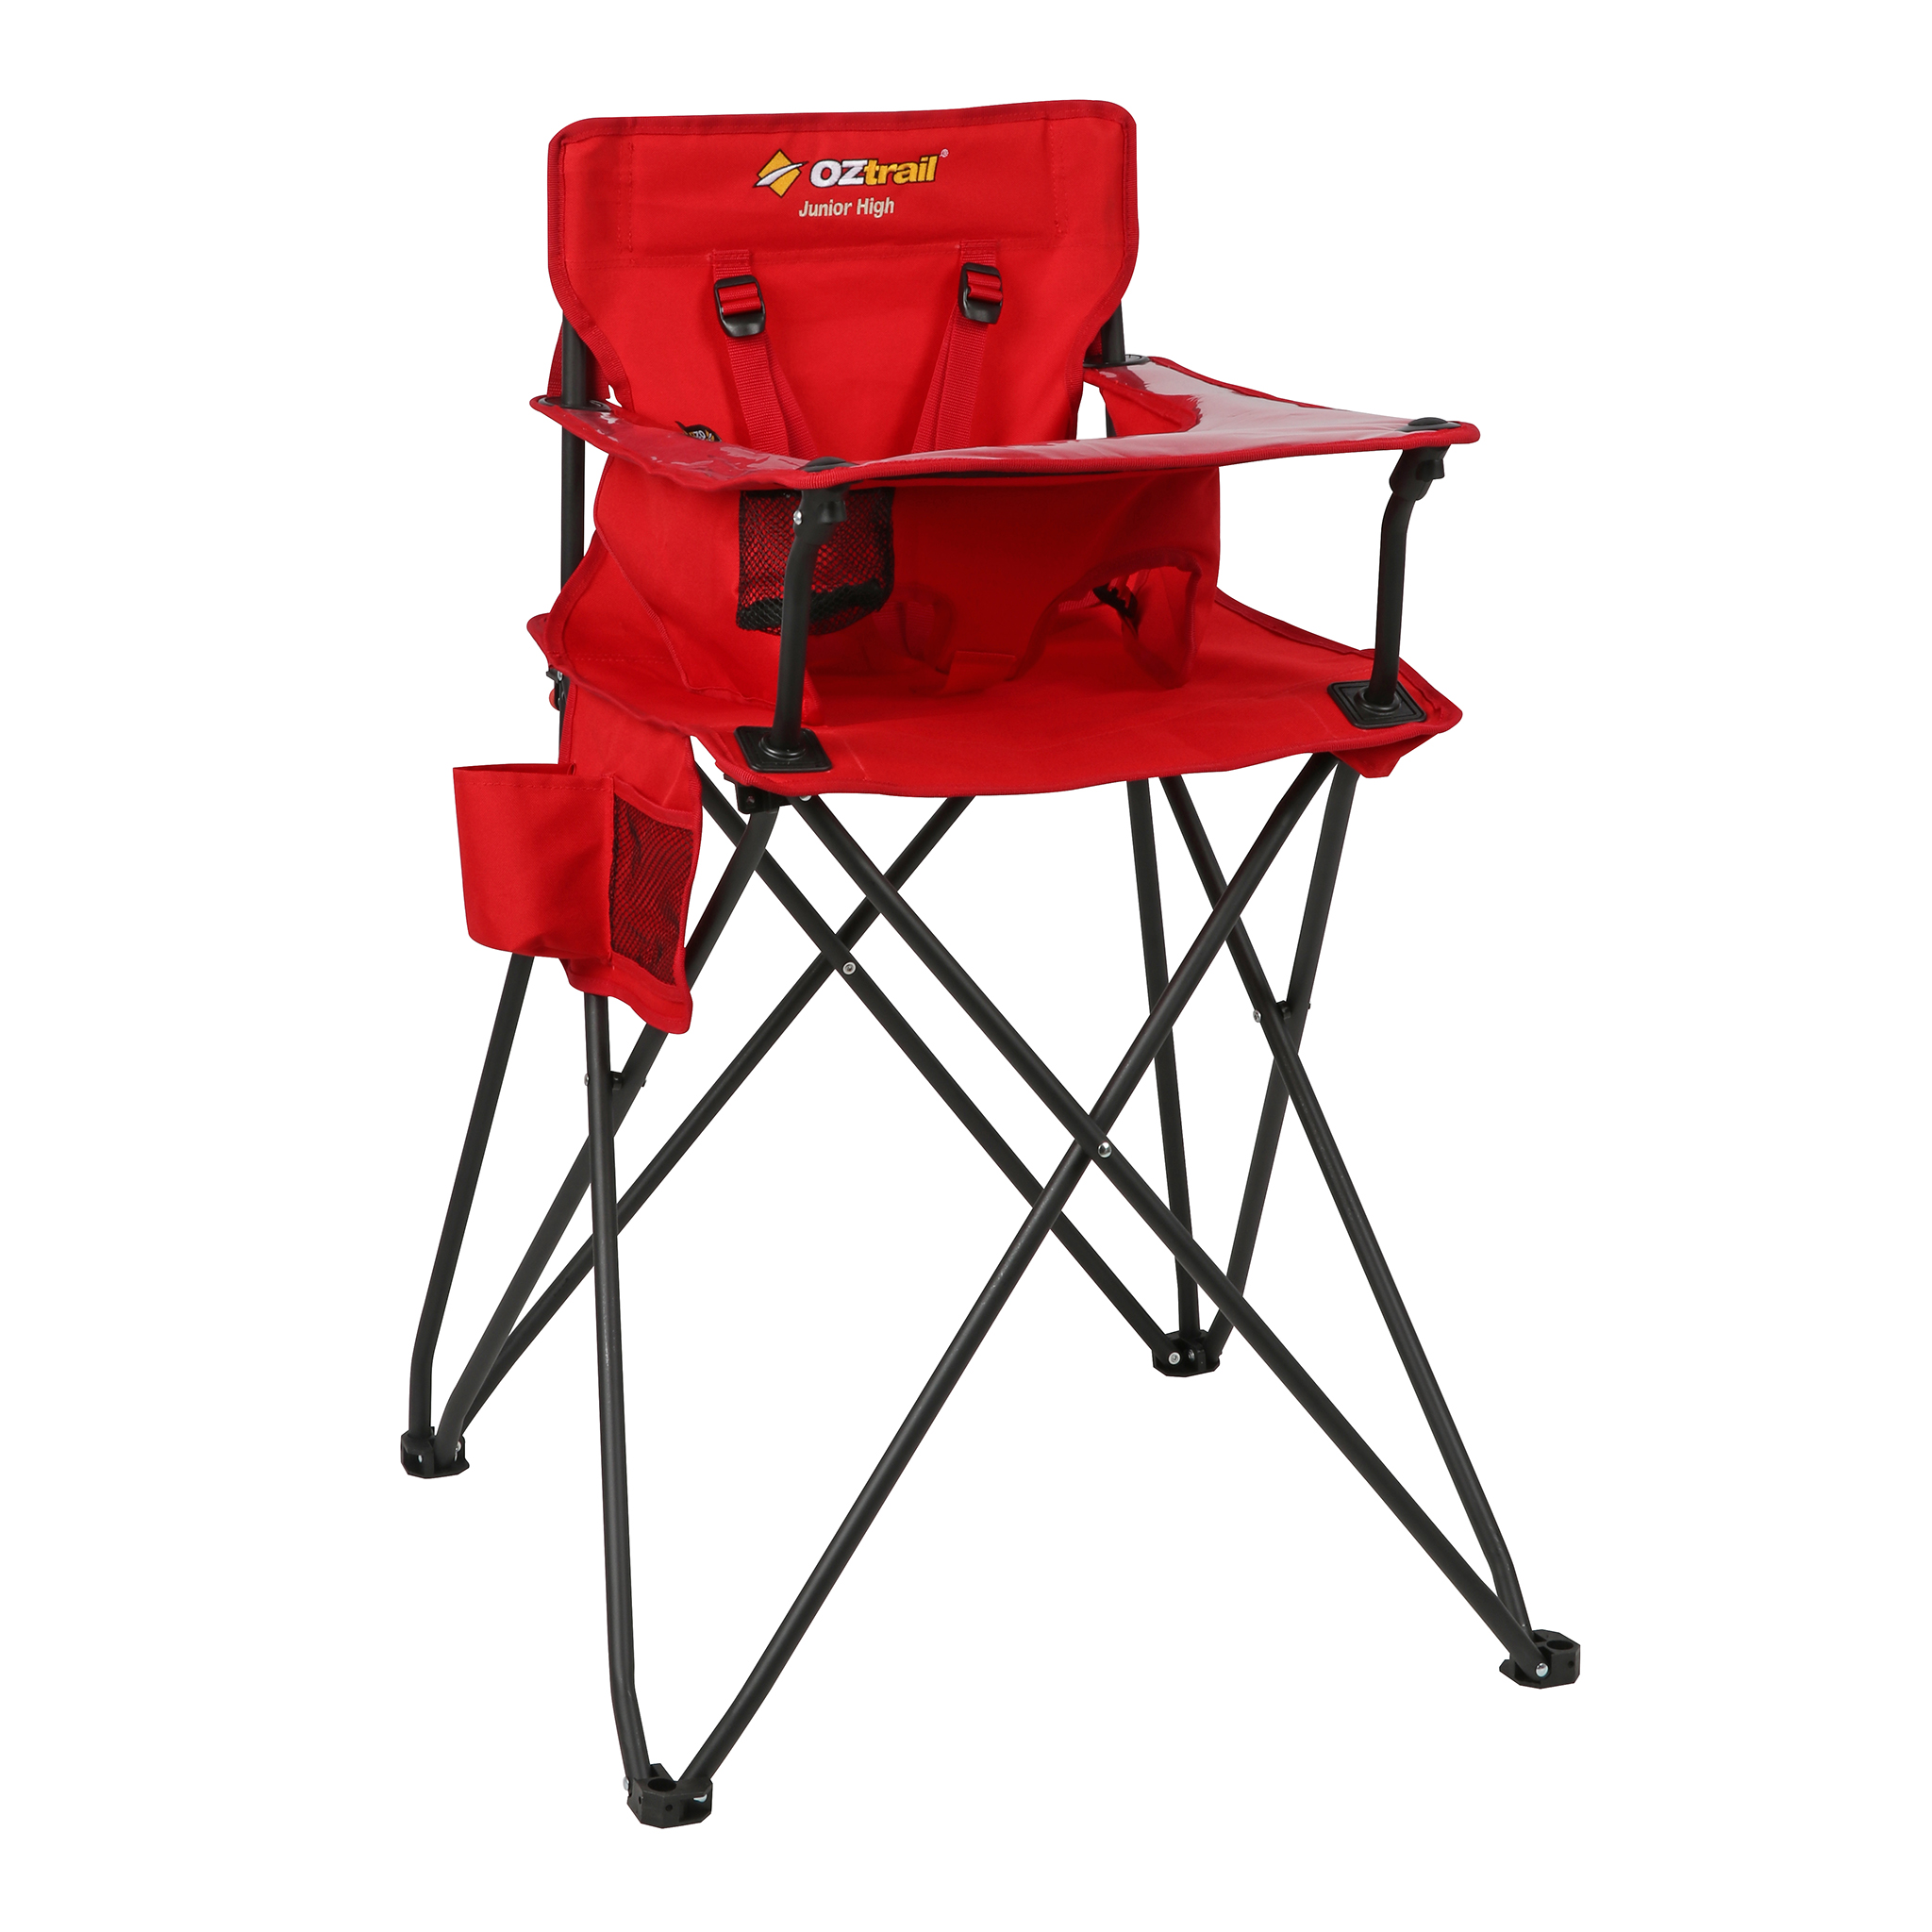 oztrail-junior-high-chair-and-r120-courier-anywhere-in-sa-